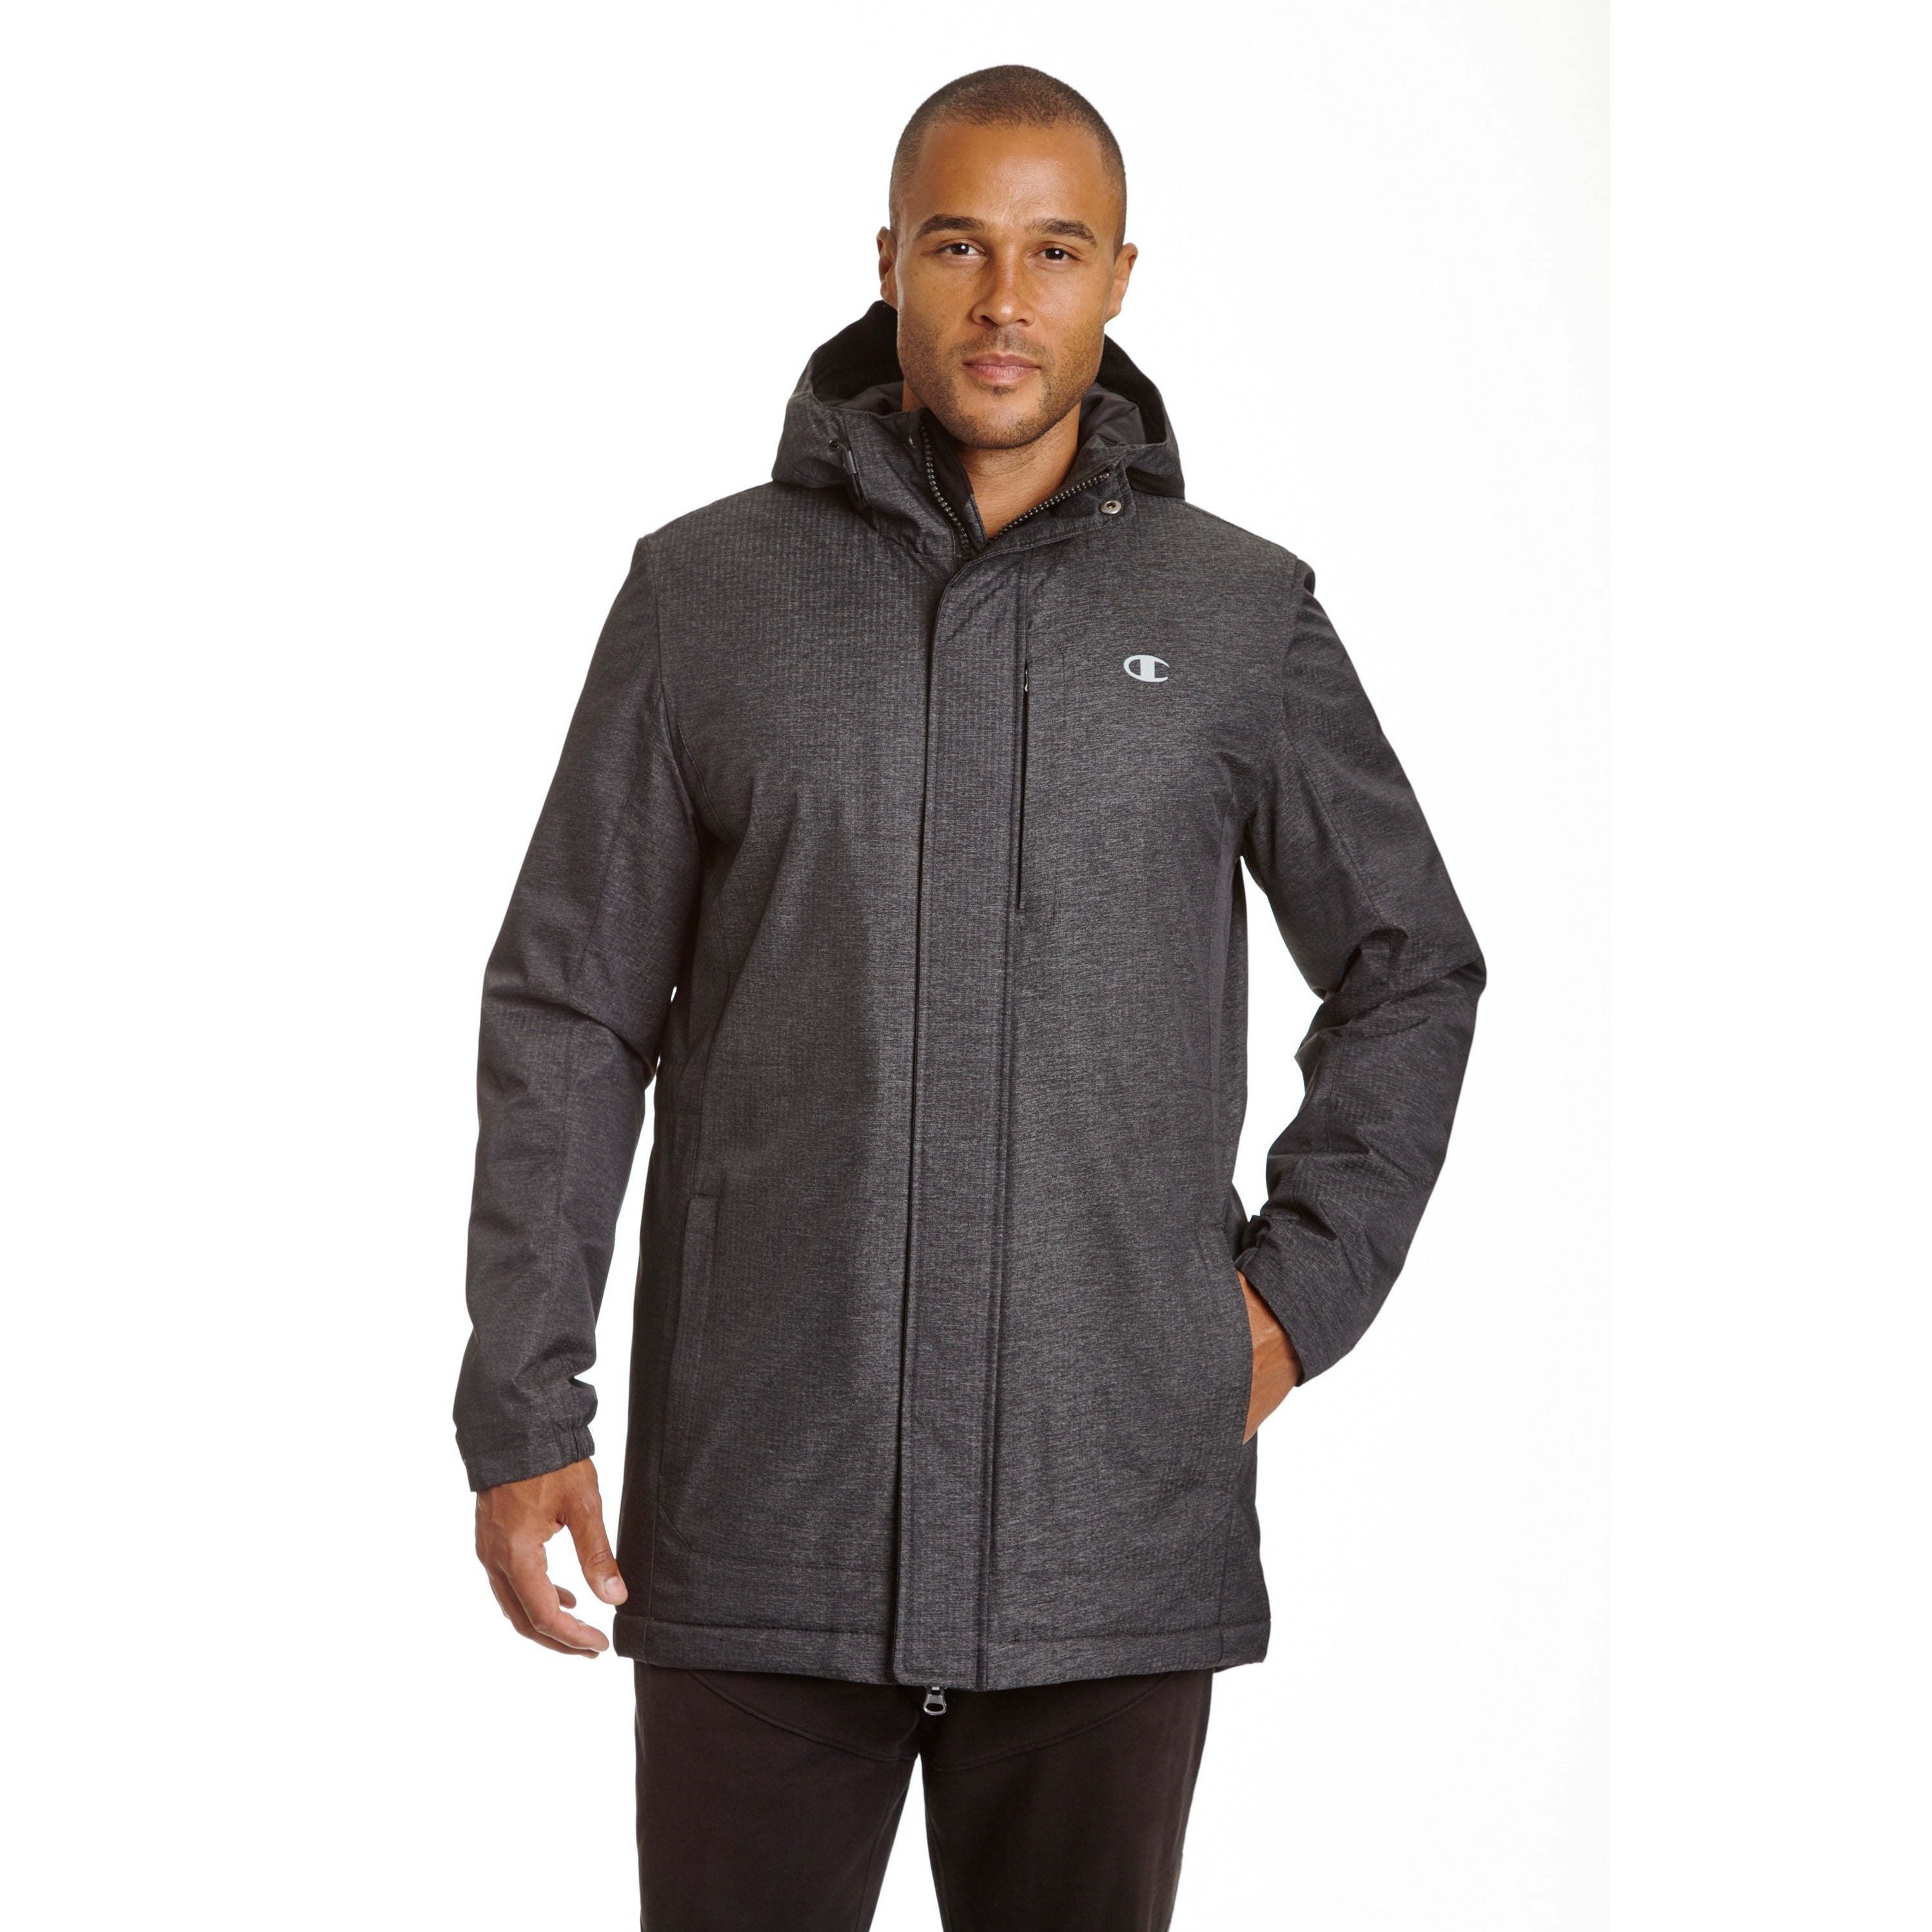 Men's Clothing | Shop our Best Clothing & Shoes Deals Online at  Overstock.com